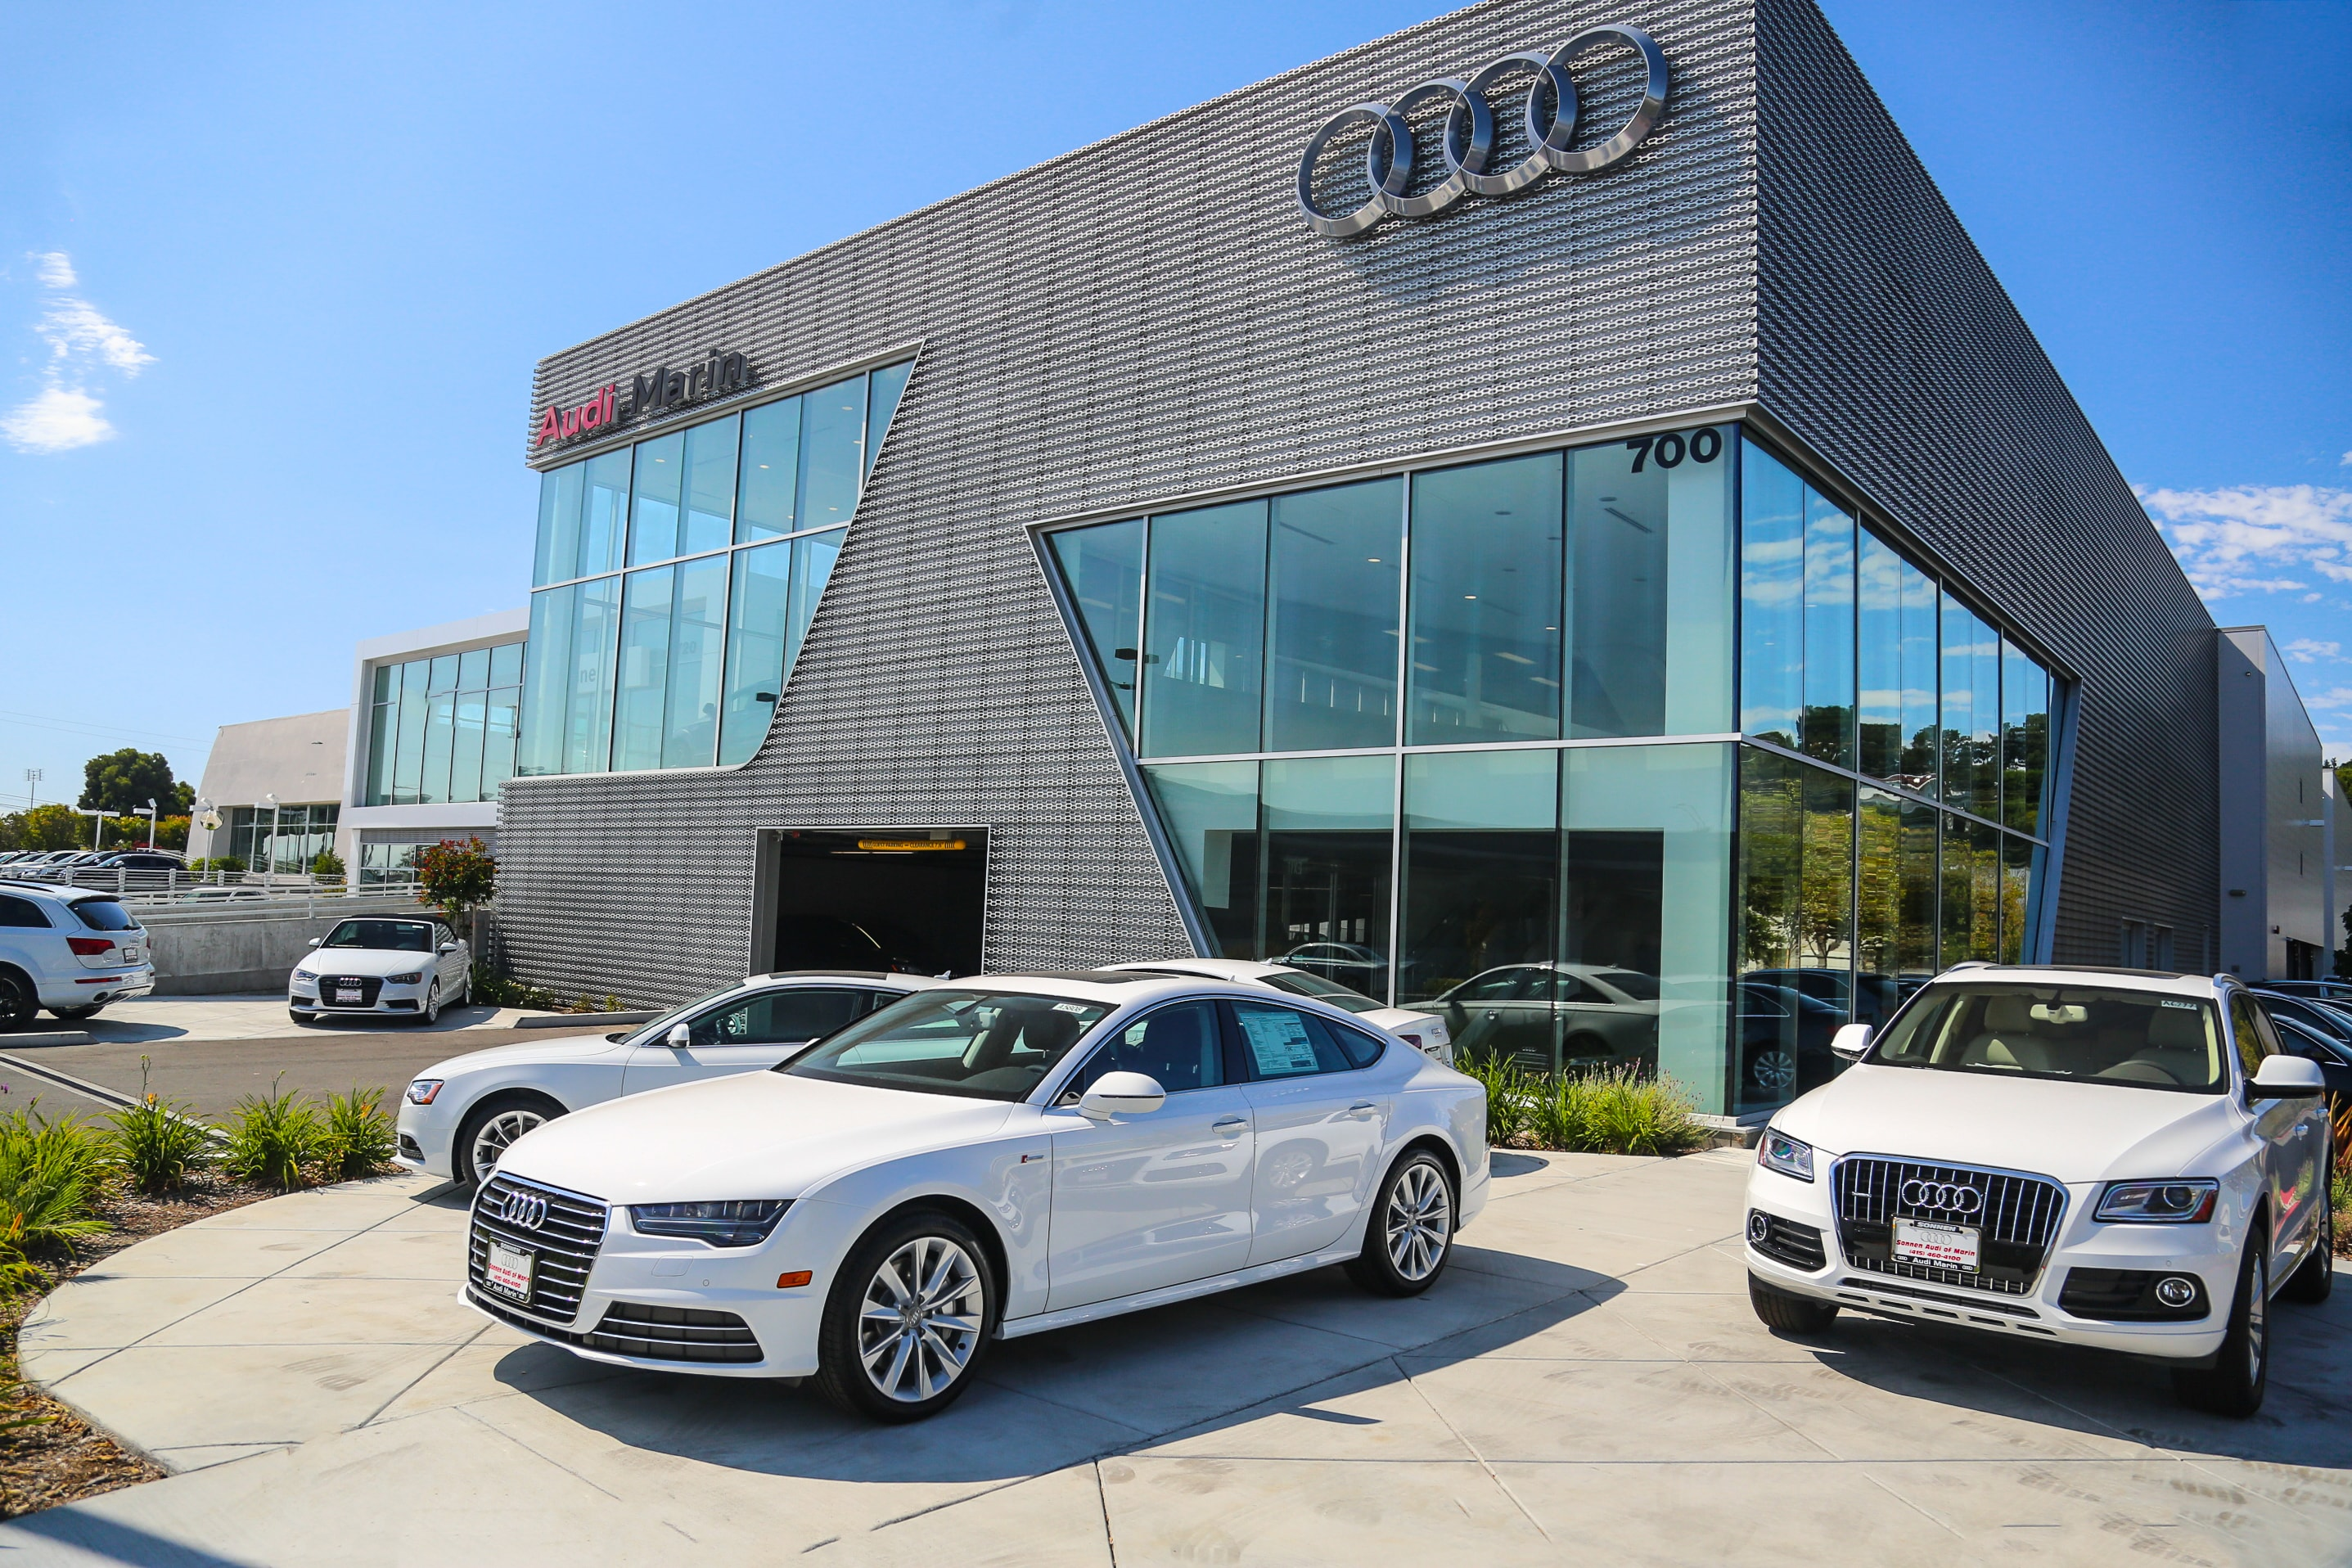 Used Audi Car Dealership in San Rafael | Pre-Owned Car